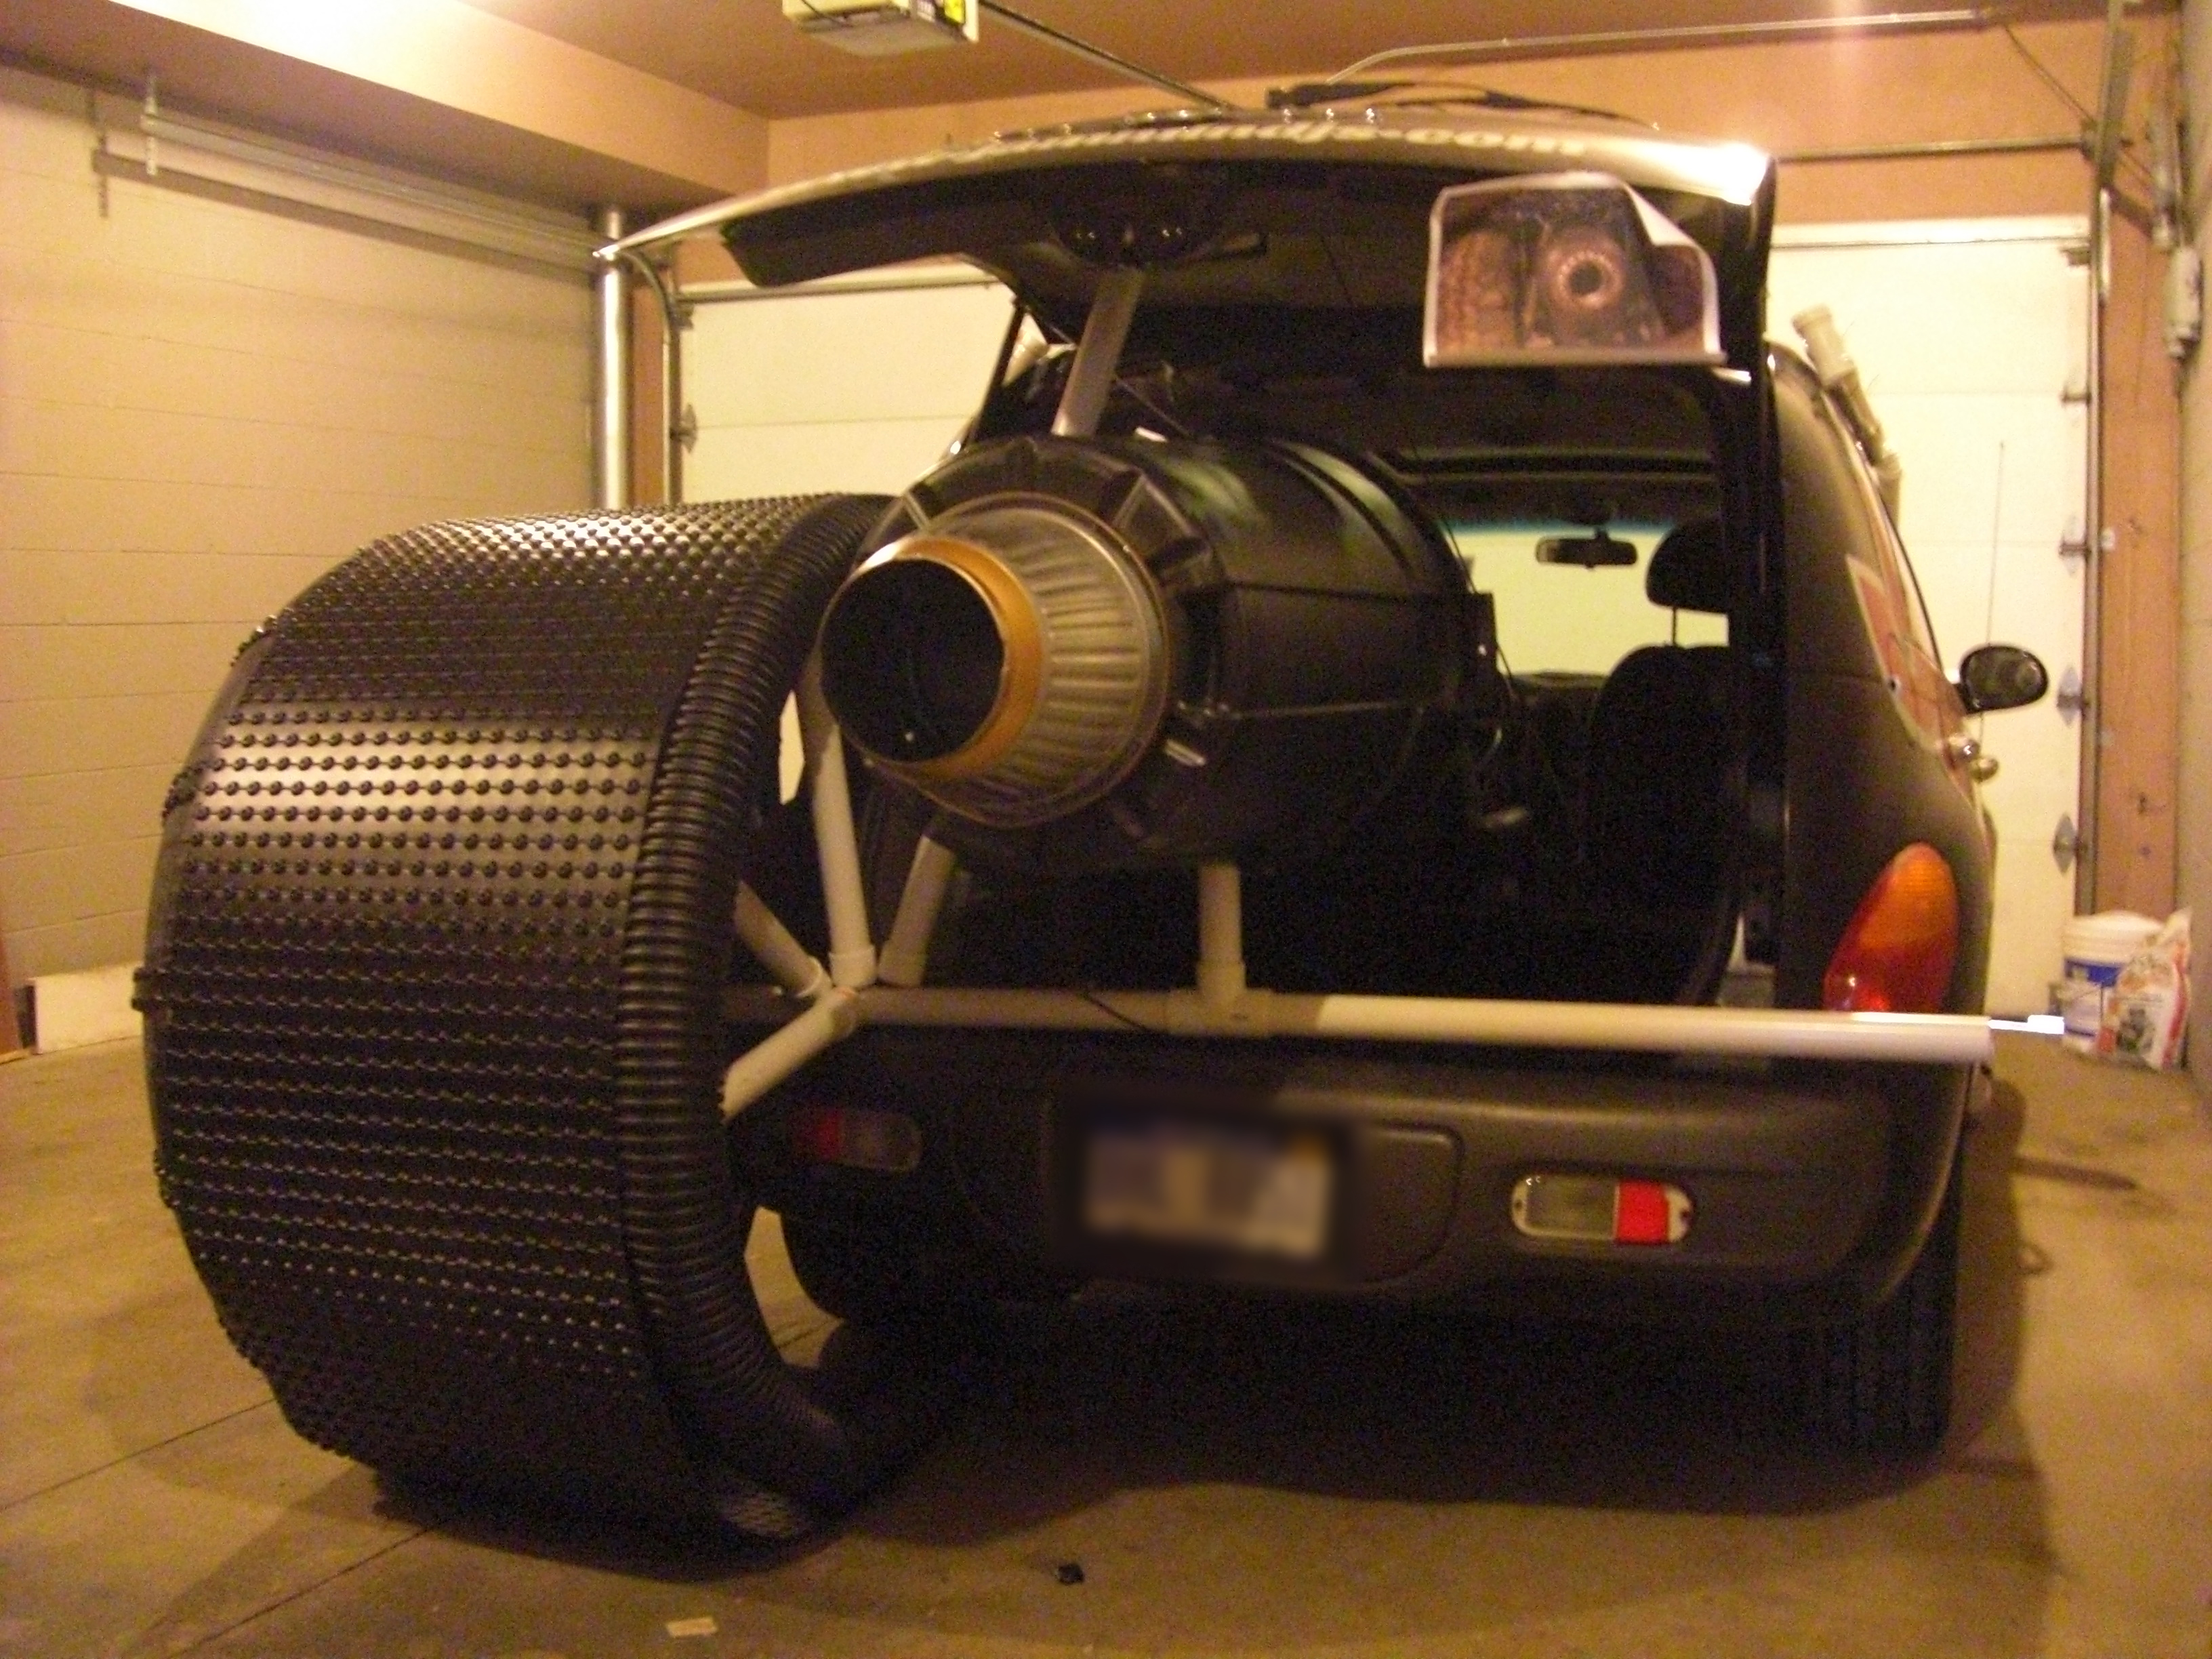 Picture of Rear Tires, Treads and Assembly (w/ Rocket Engine)